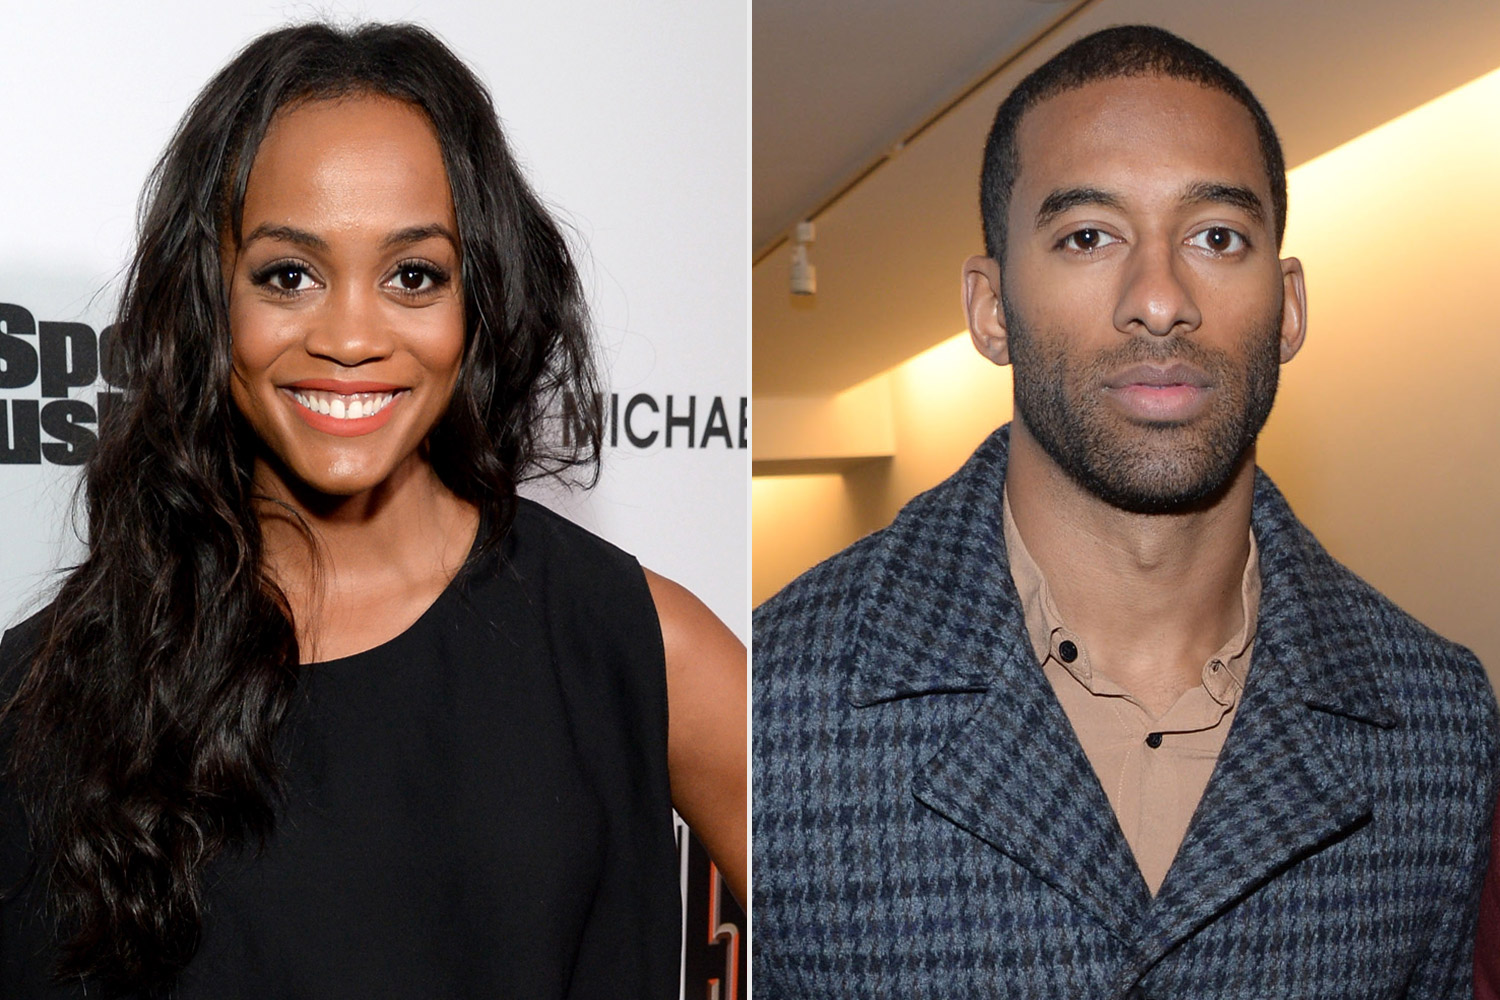 Rachel Lindsay split with Matt James